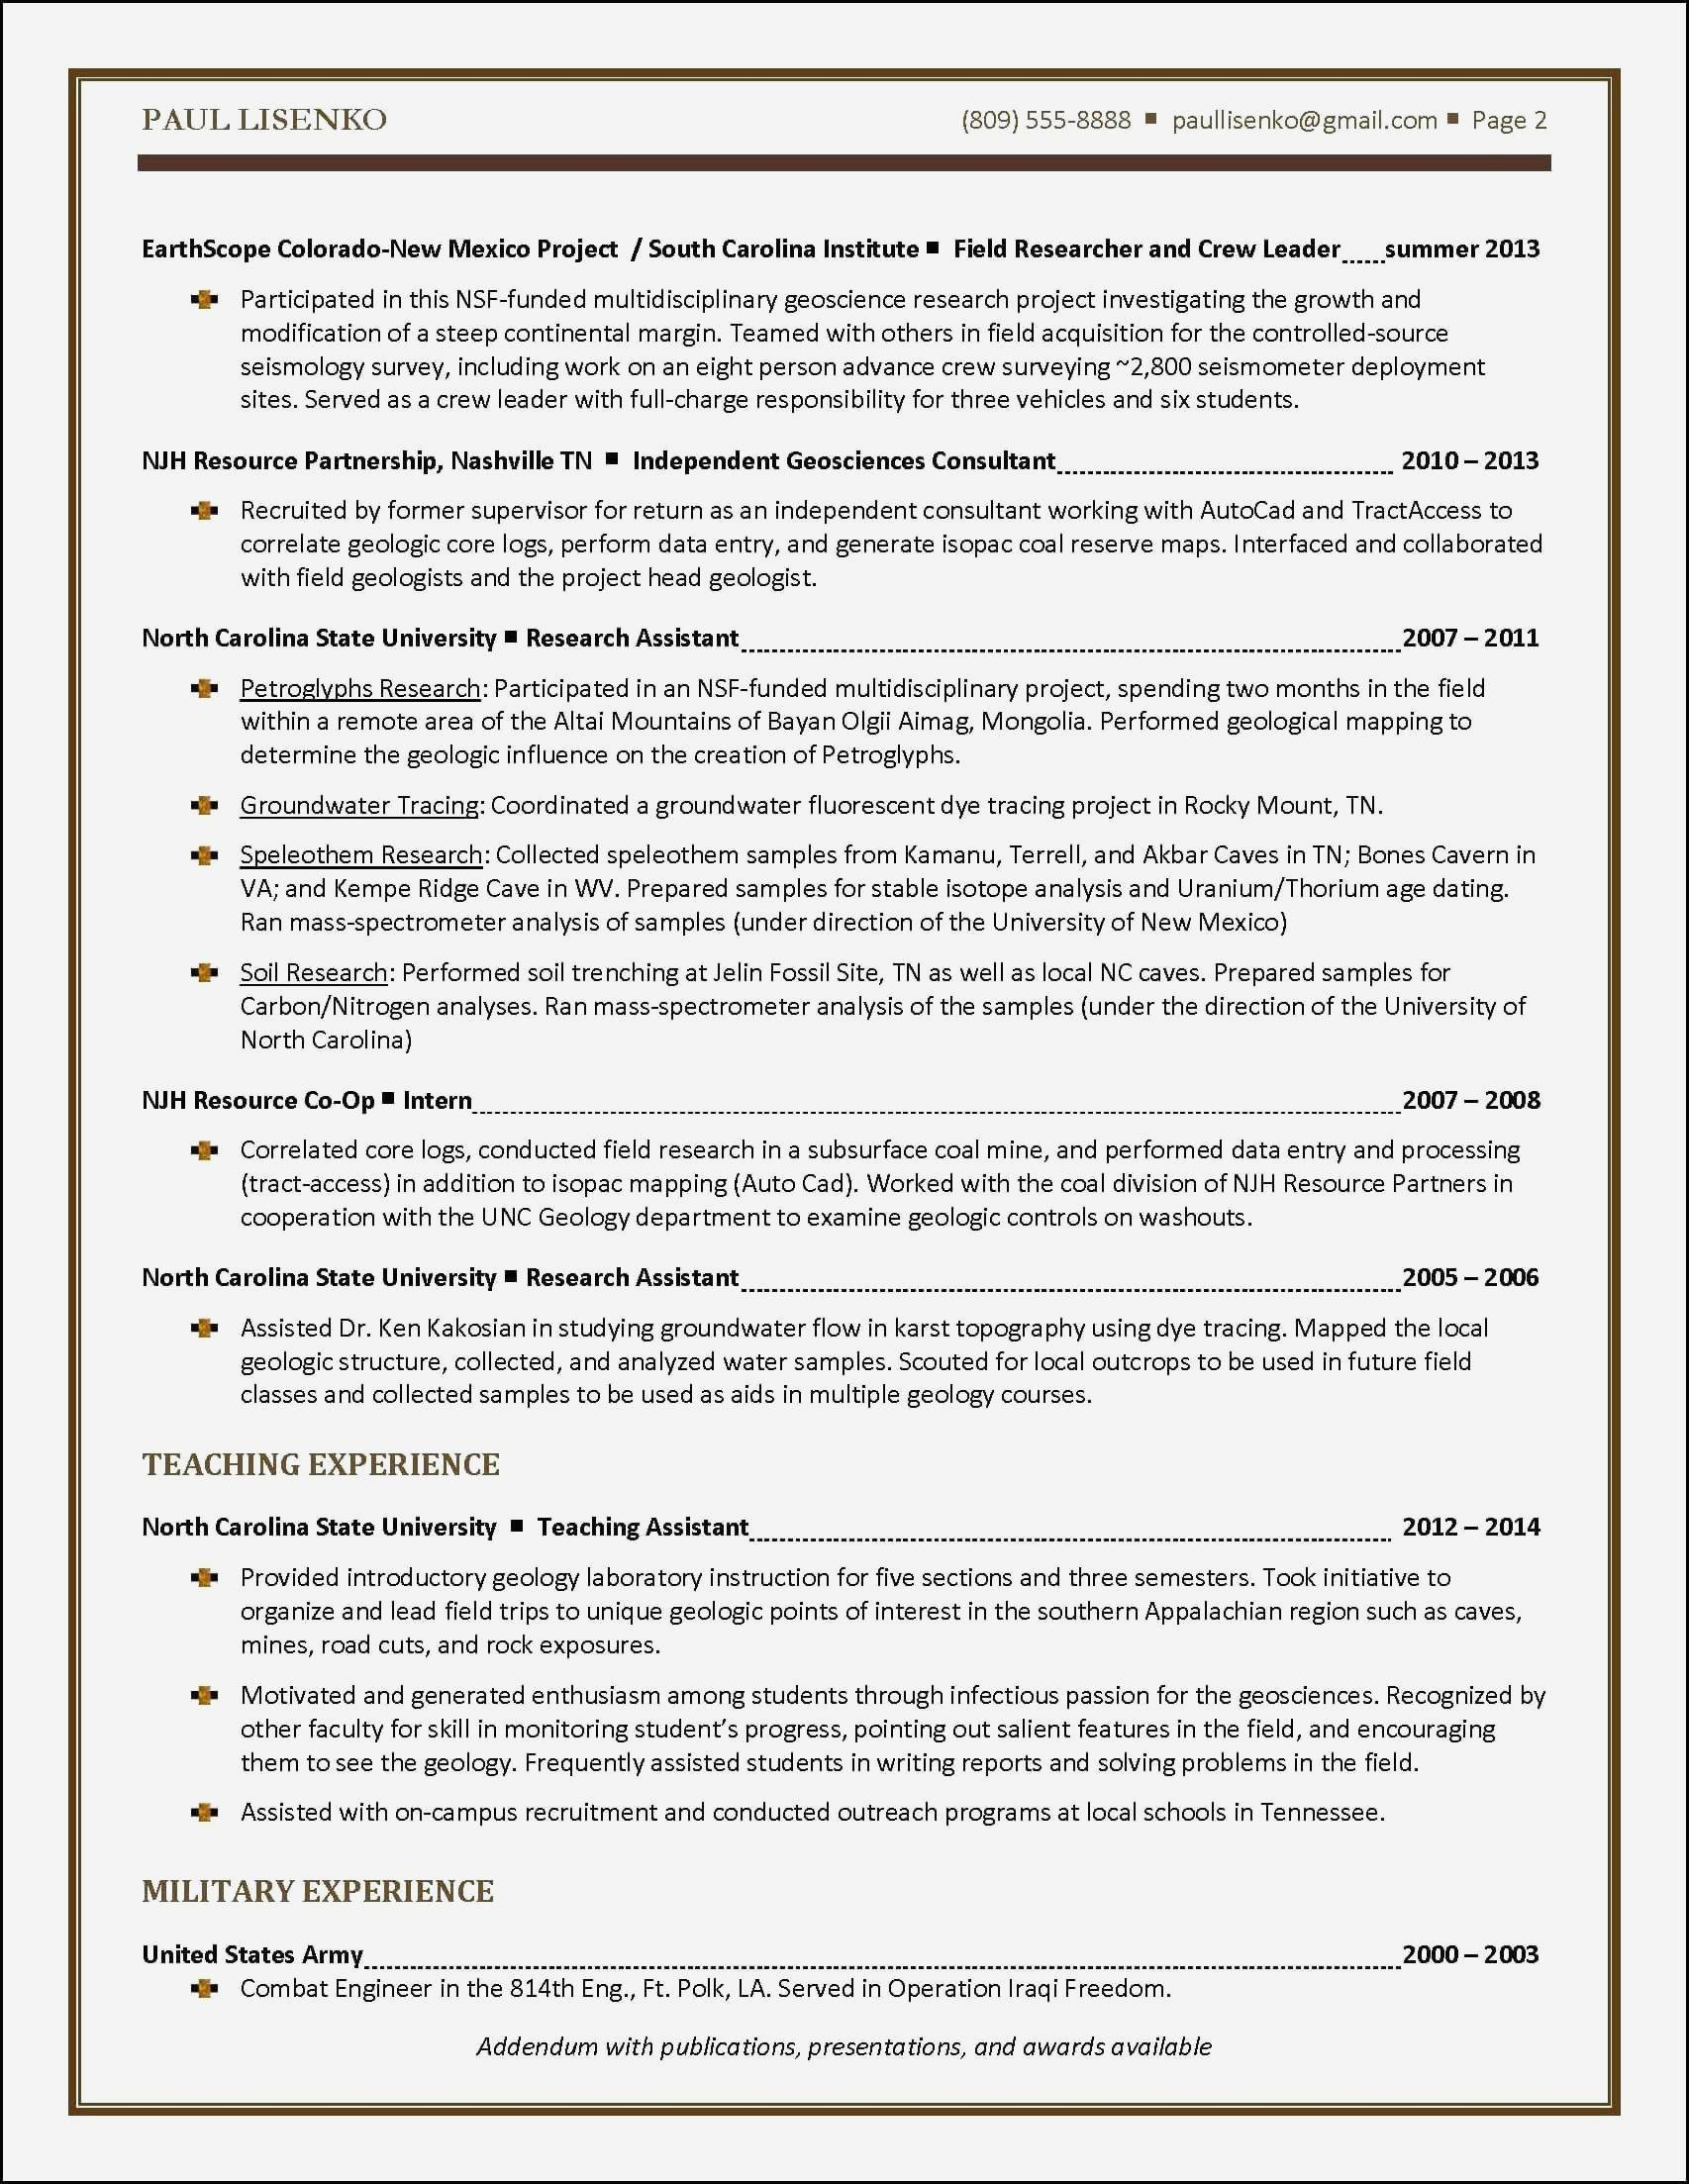 Resume Addendum Template - Geologist Resume Template Elegant College Grad Resume Awesome